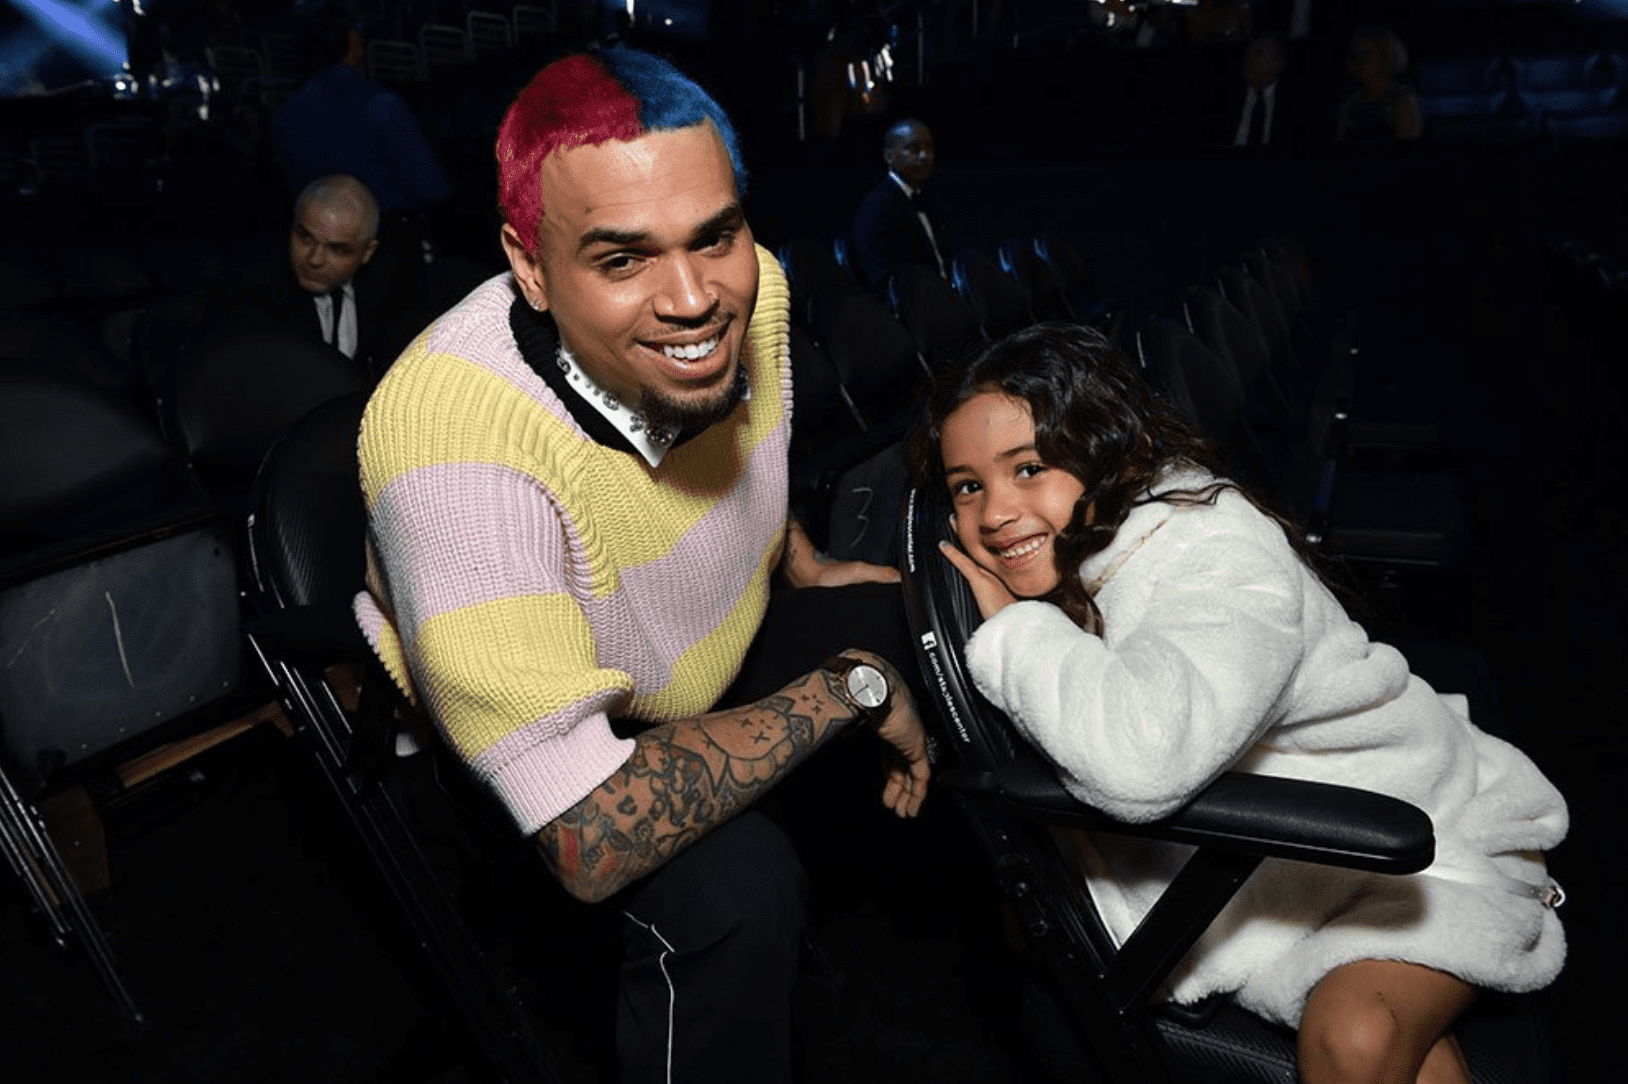 Chris Brown and Royalty Brown attend the 62nd Annual Grammy Awards at the Staples Center on January 26, 2020.   Source: Getty Images